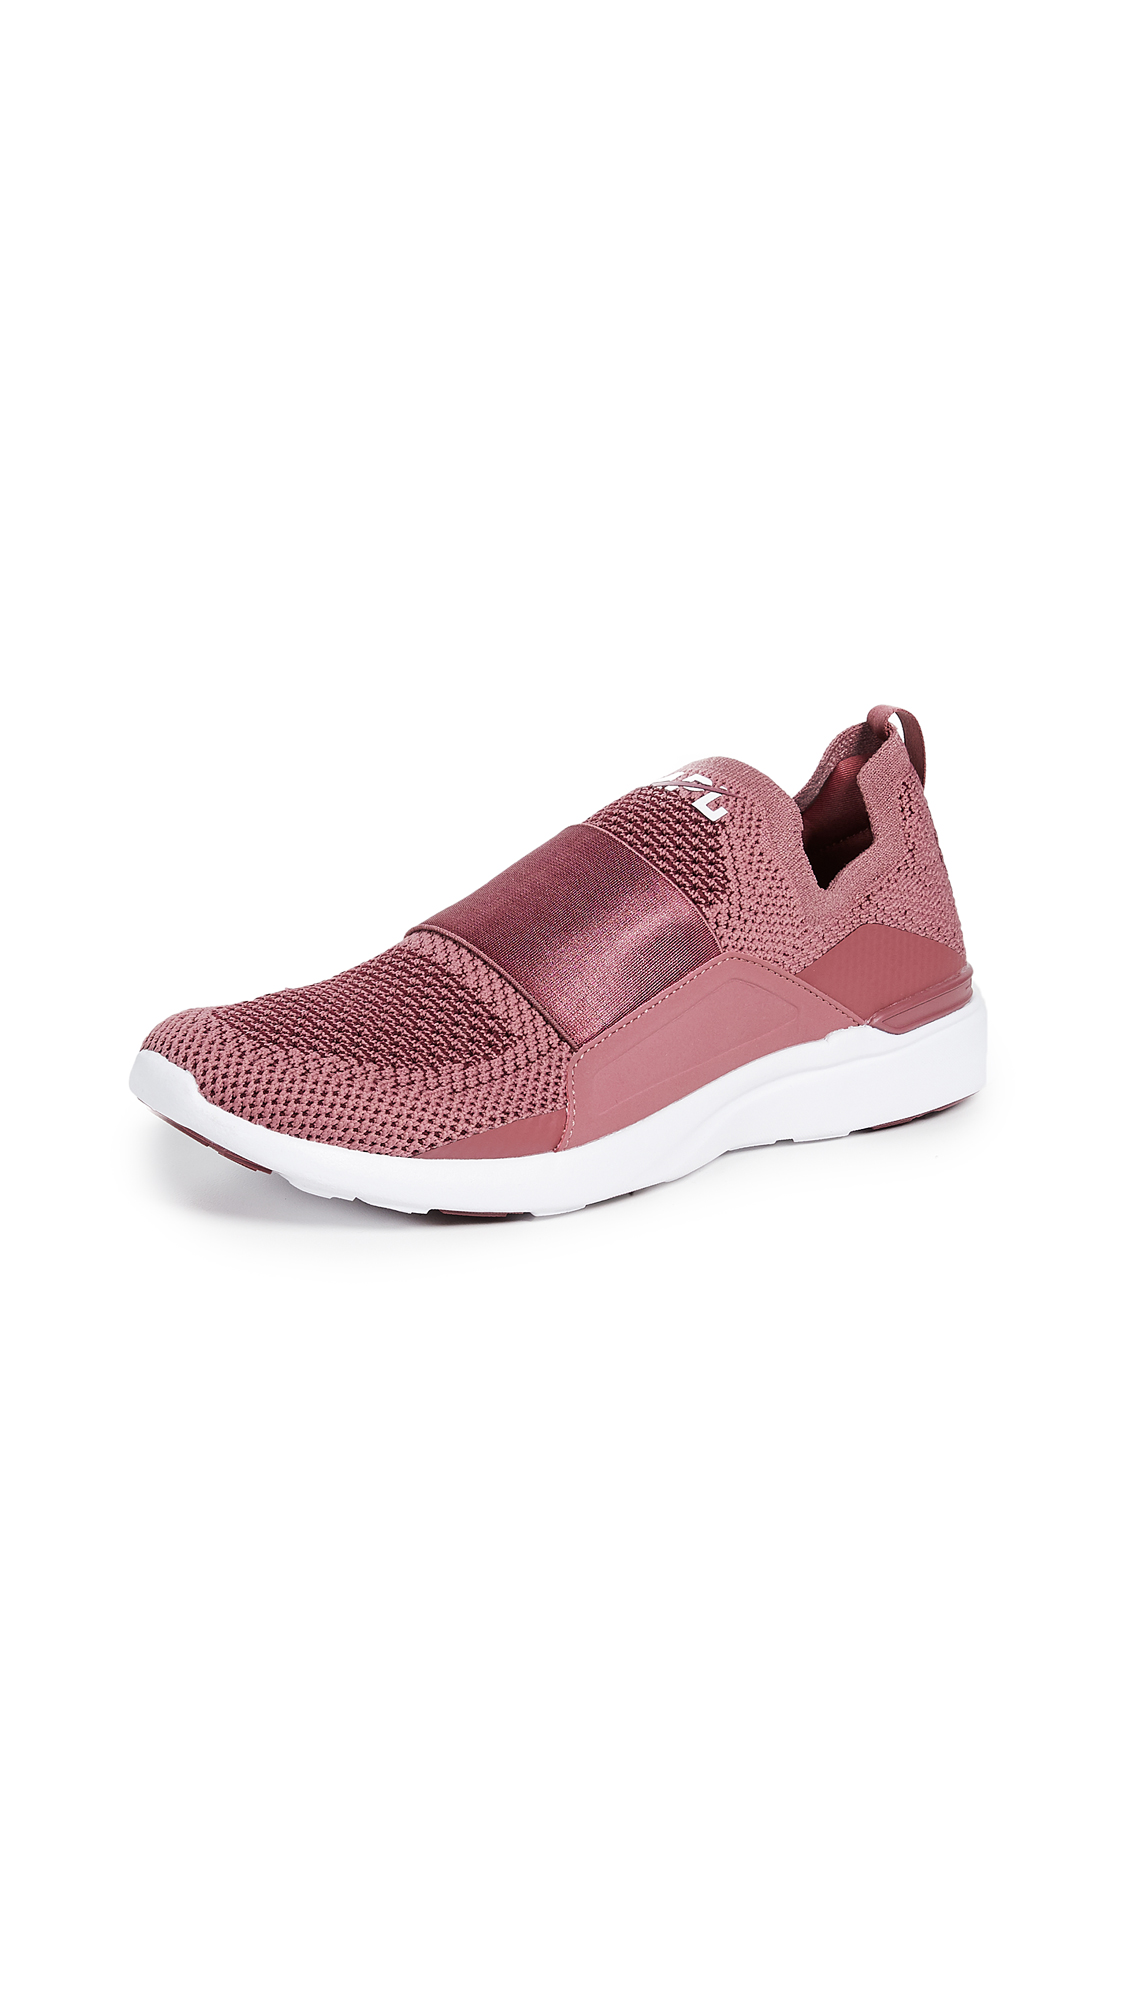 APL: Athletic Propulsion Labs TechLoom Bliss Sneakers - Roan Rouge/Burgundy/White